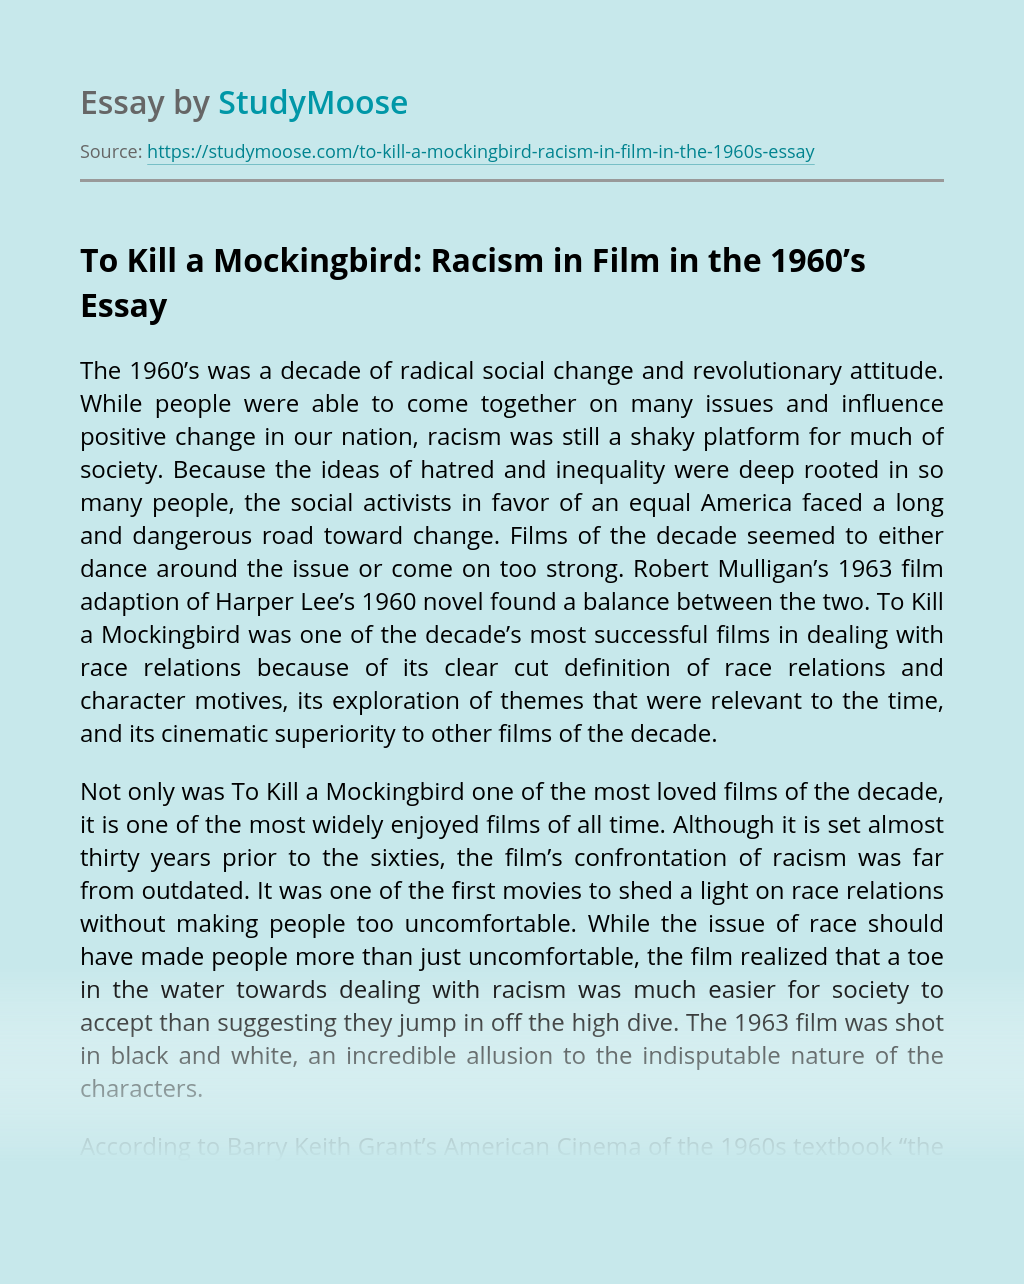 To Kill a Mockingbird: Racism in Film in the 1960's